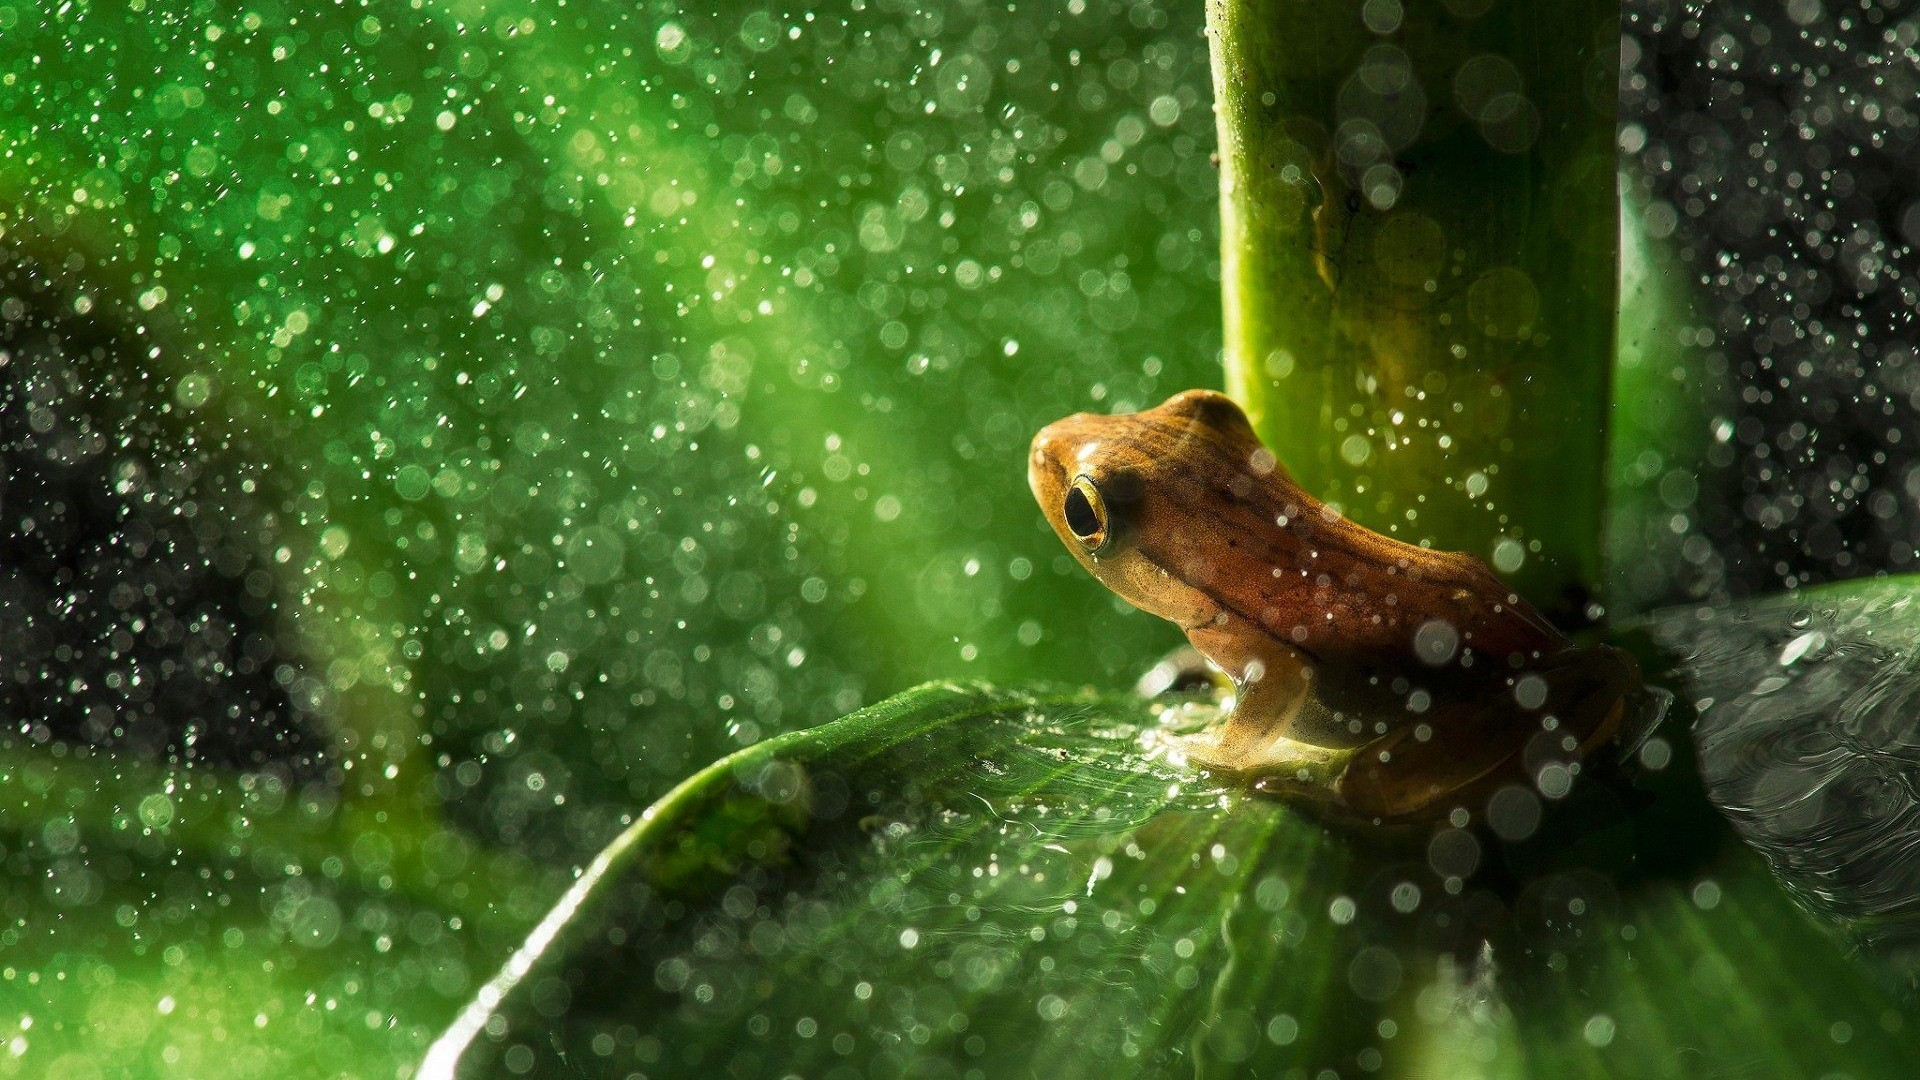 Cute Frog Wallpaper For Iphone